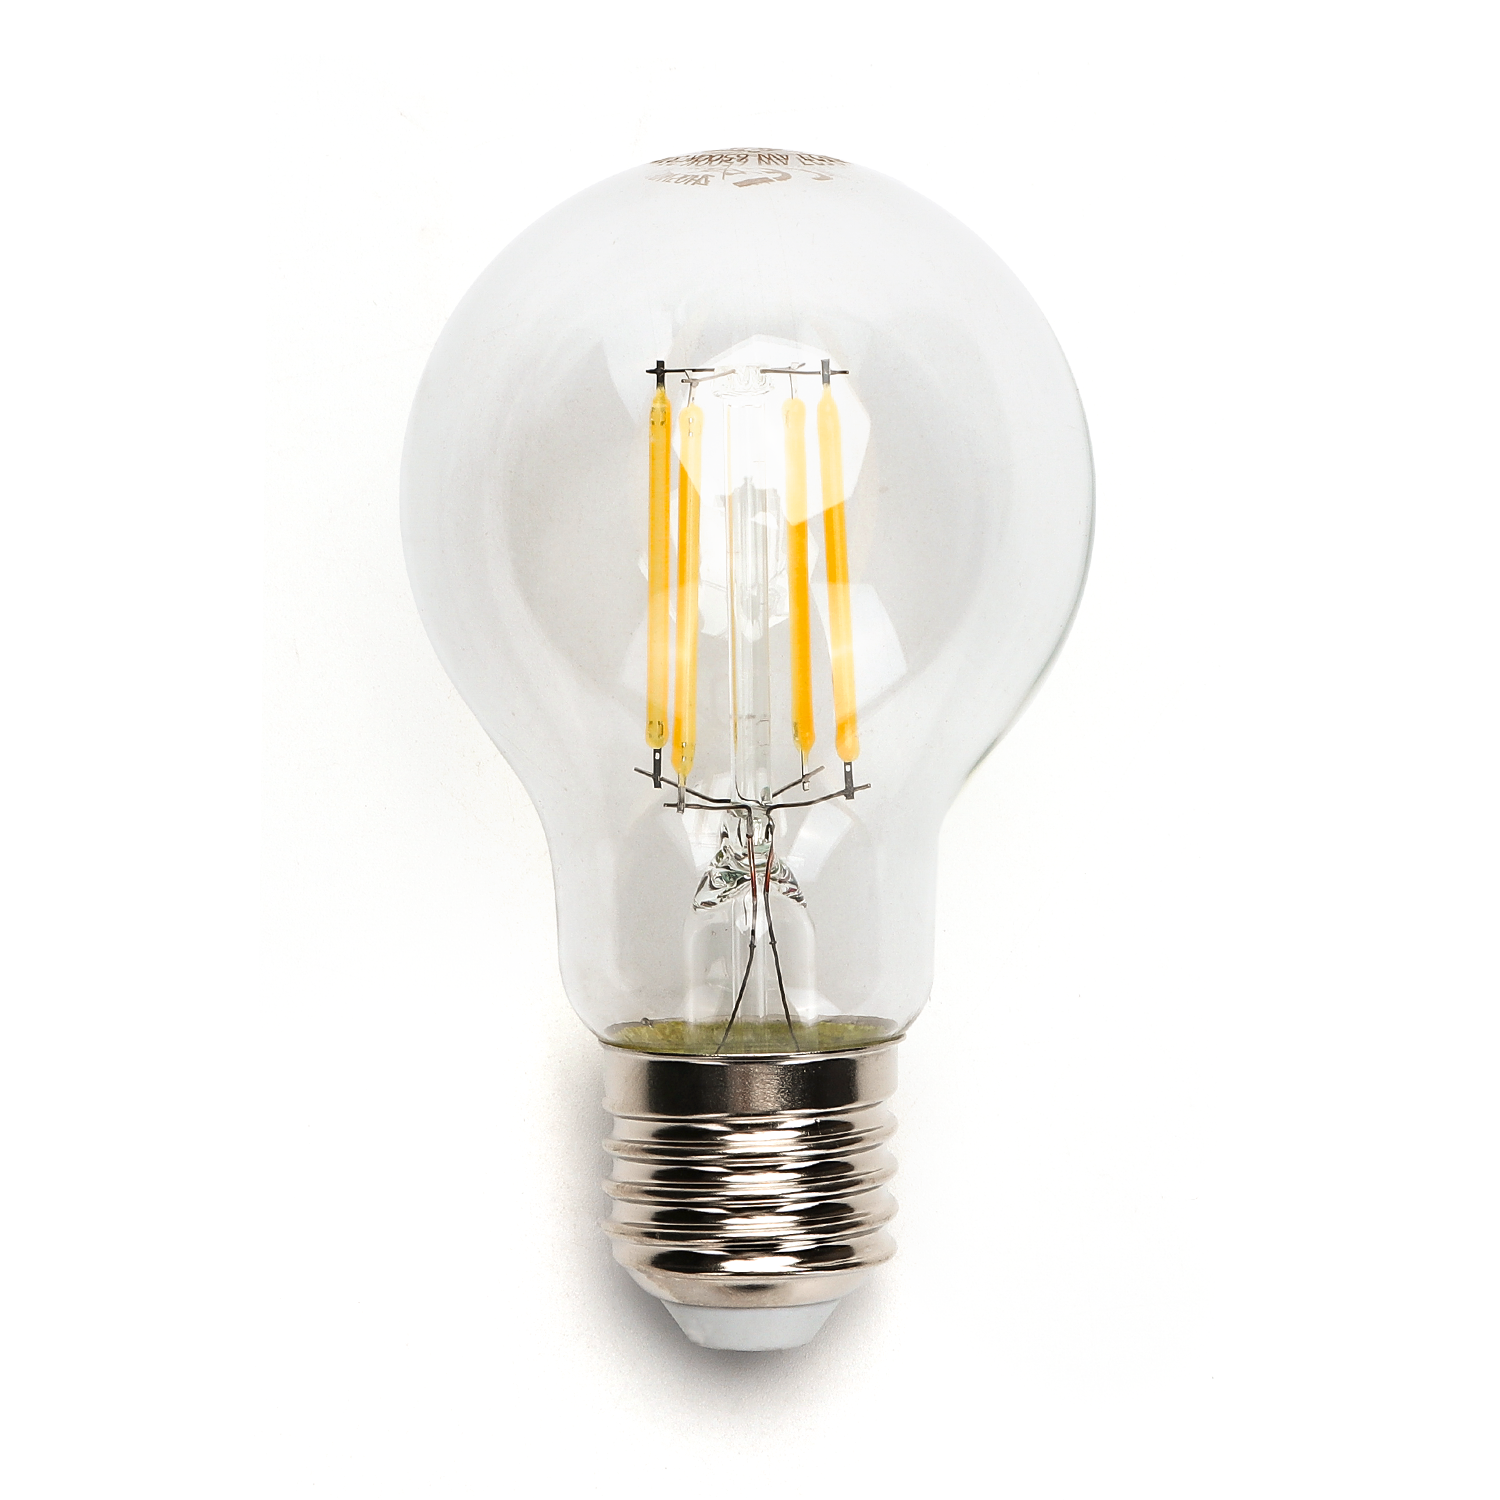 LED Filament Peer lamp 8 Watt grote fitting E27 A60 2700K Warm wit - lamp